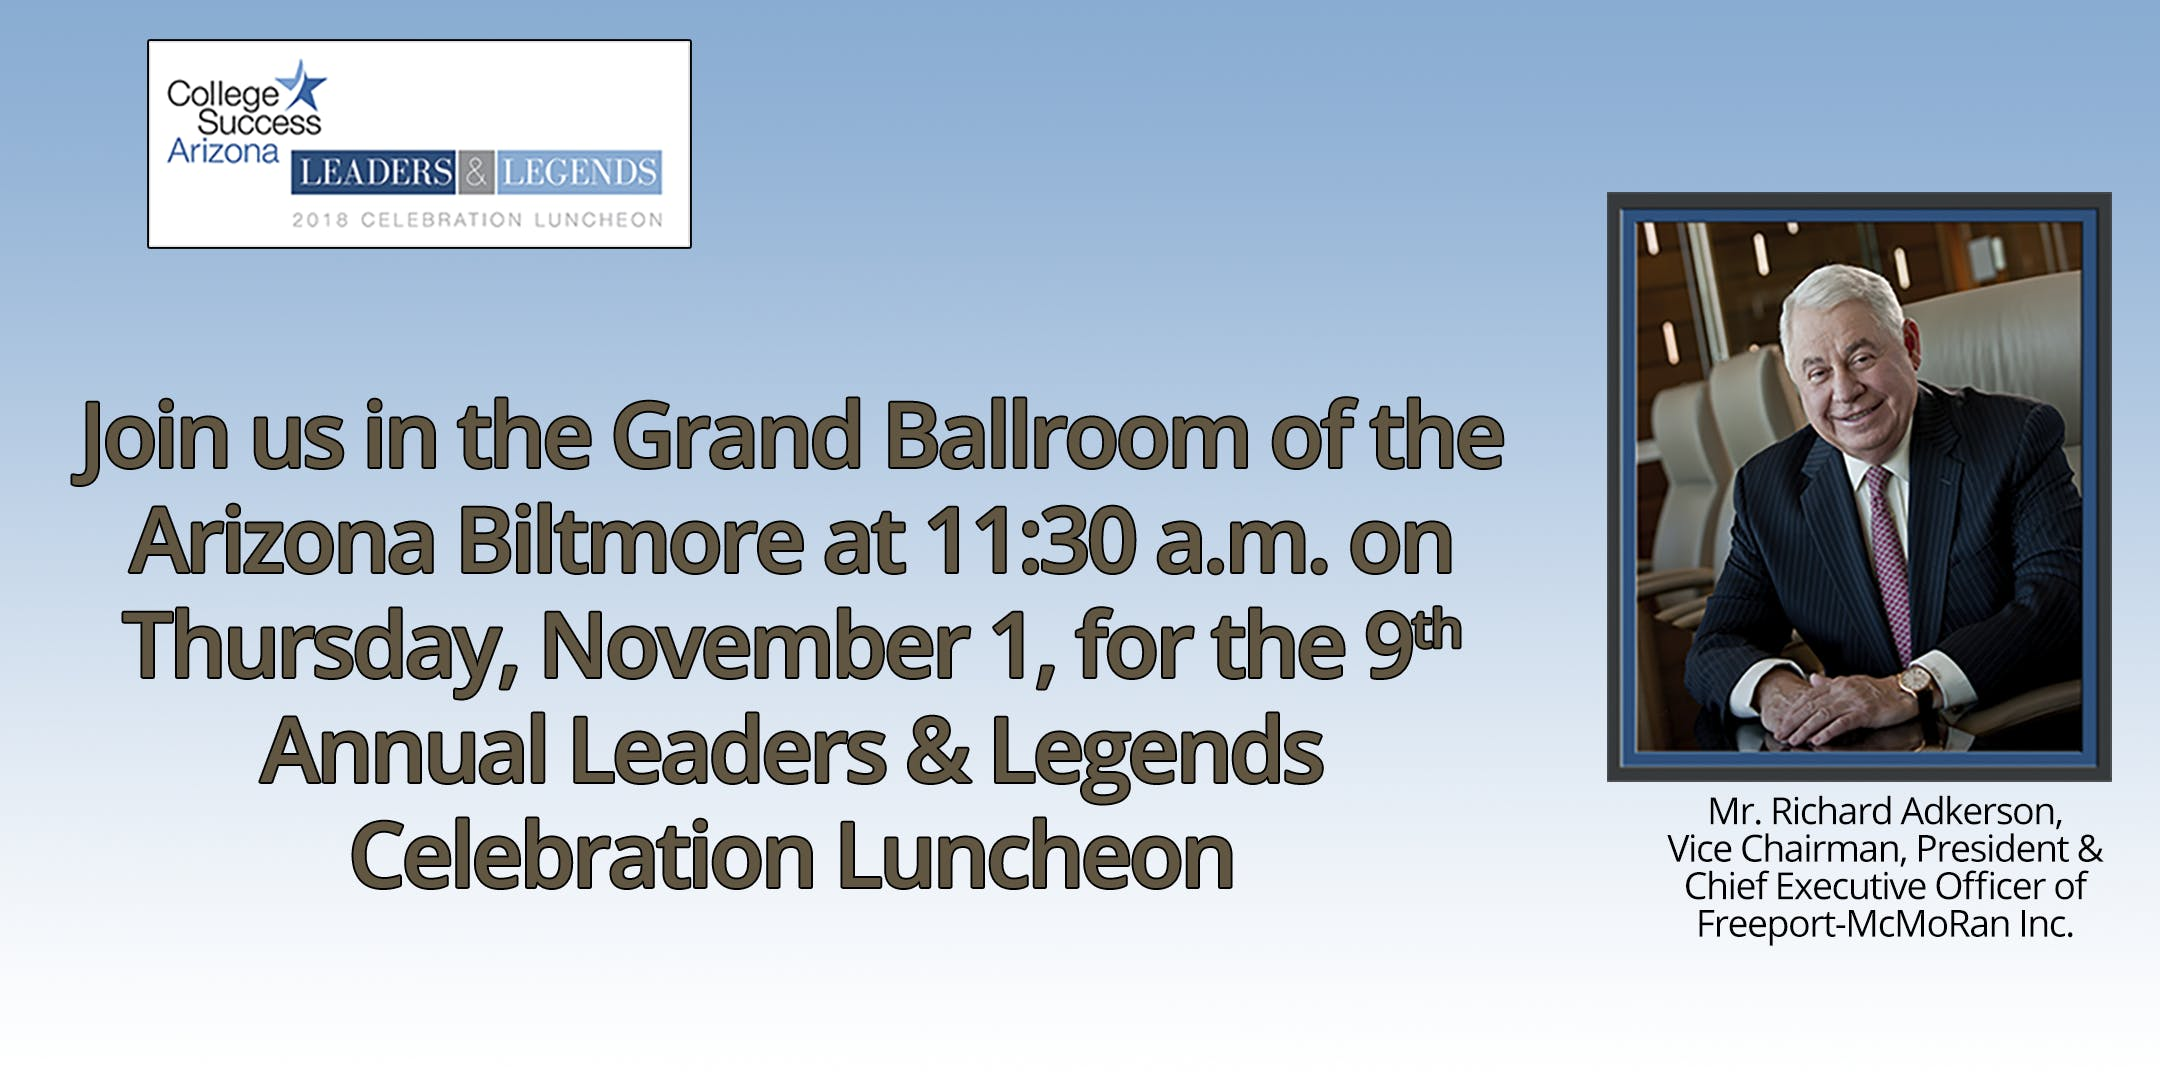 9th Annual Leaders & Legends Celebration Luncheon